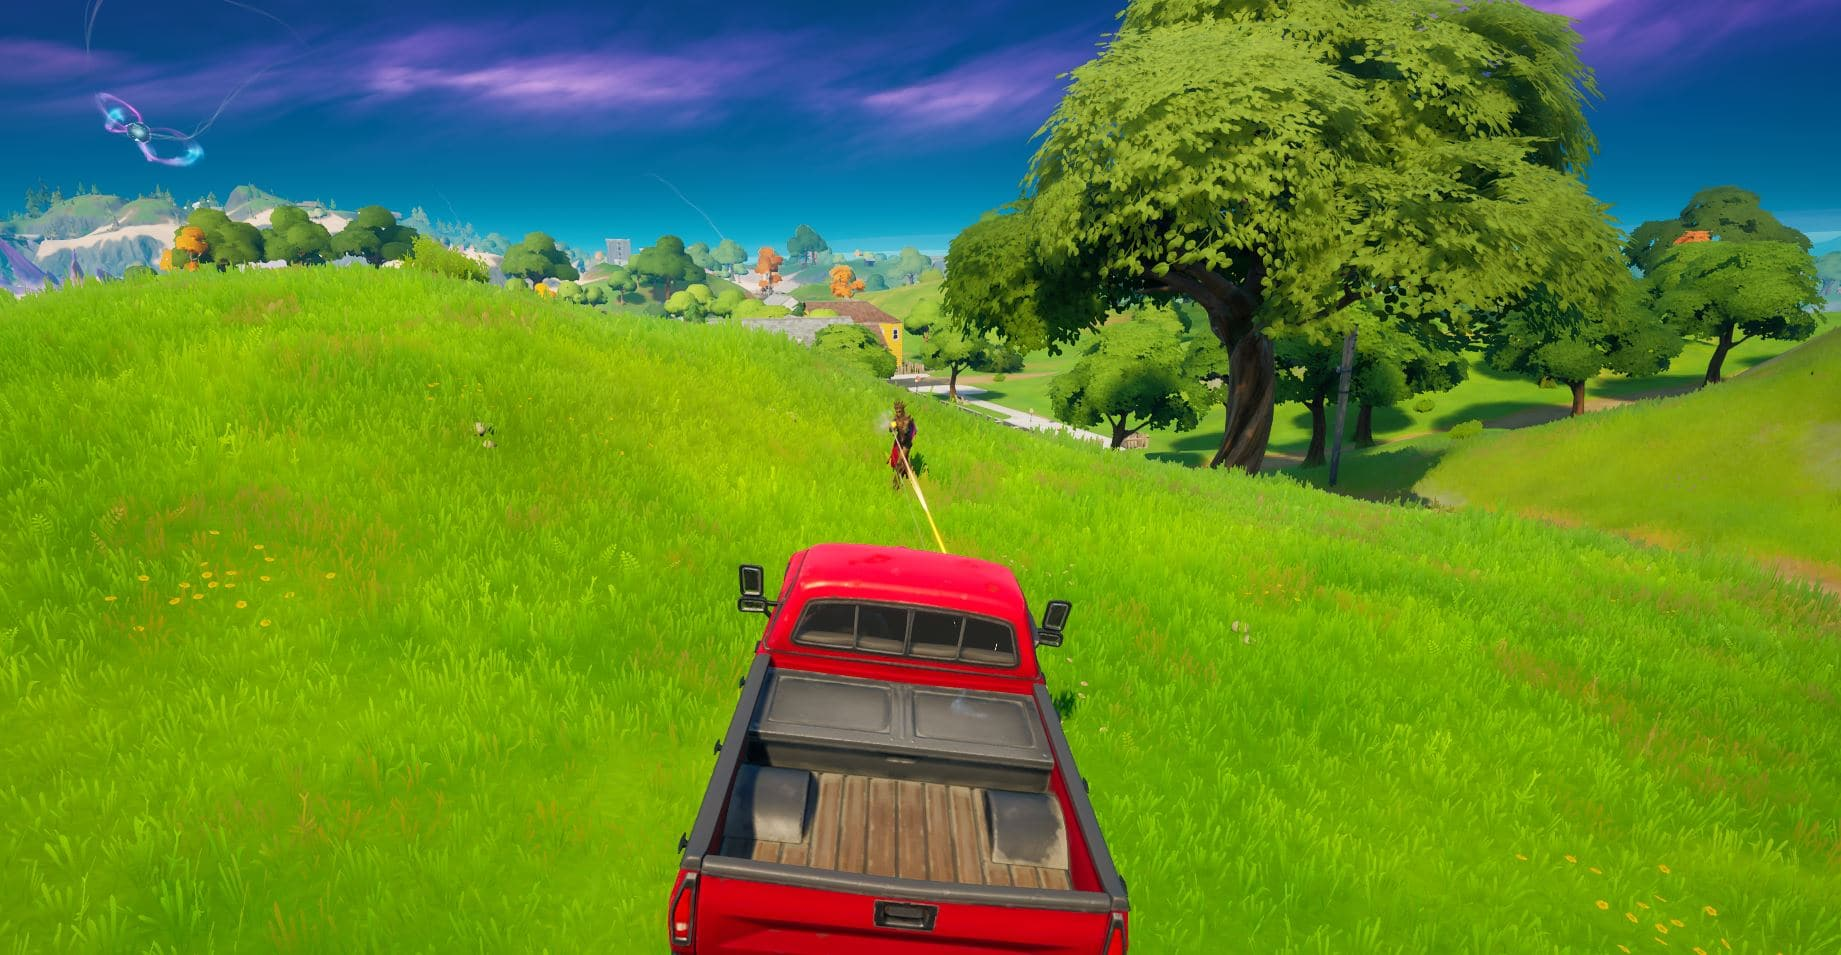 Fortnite Damage Opponents in Vehicles